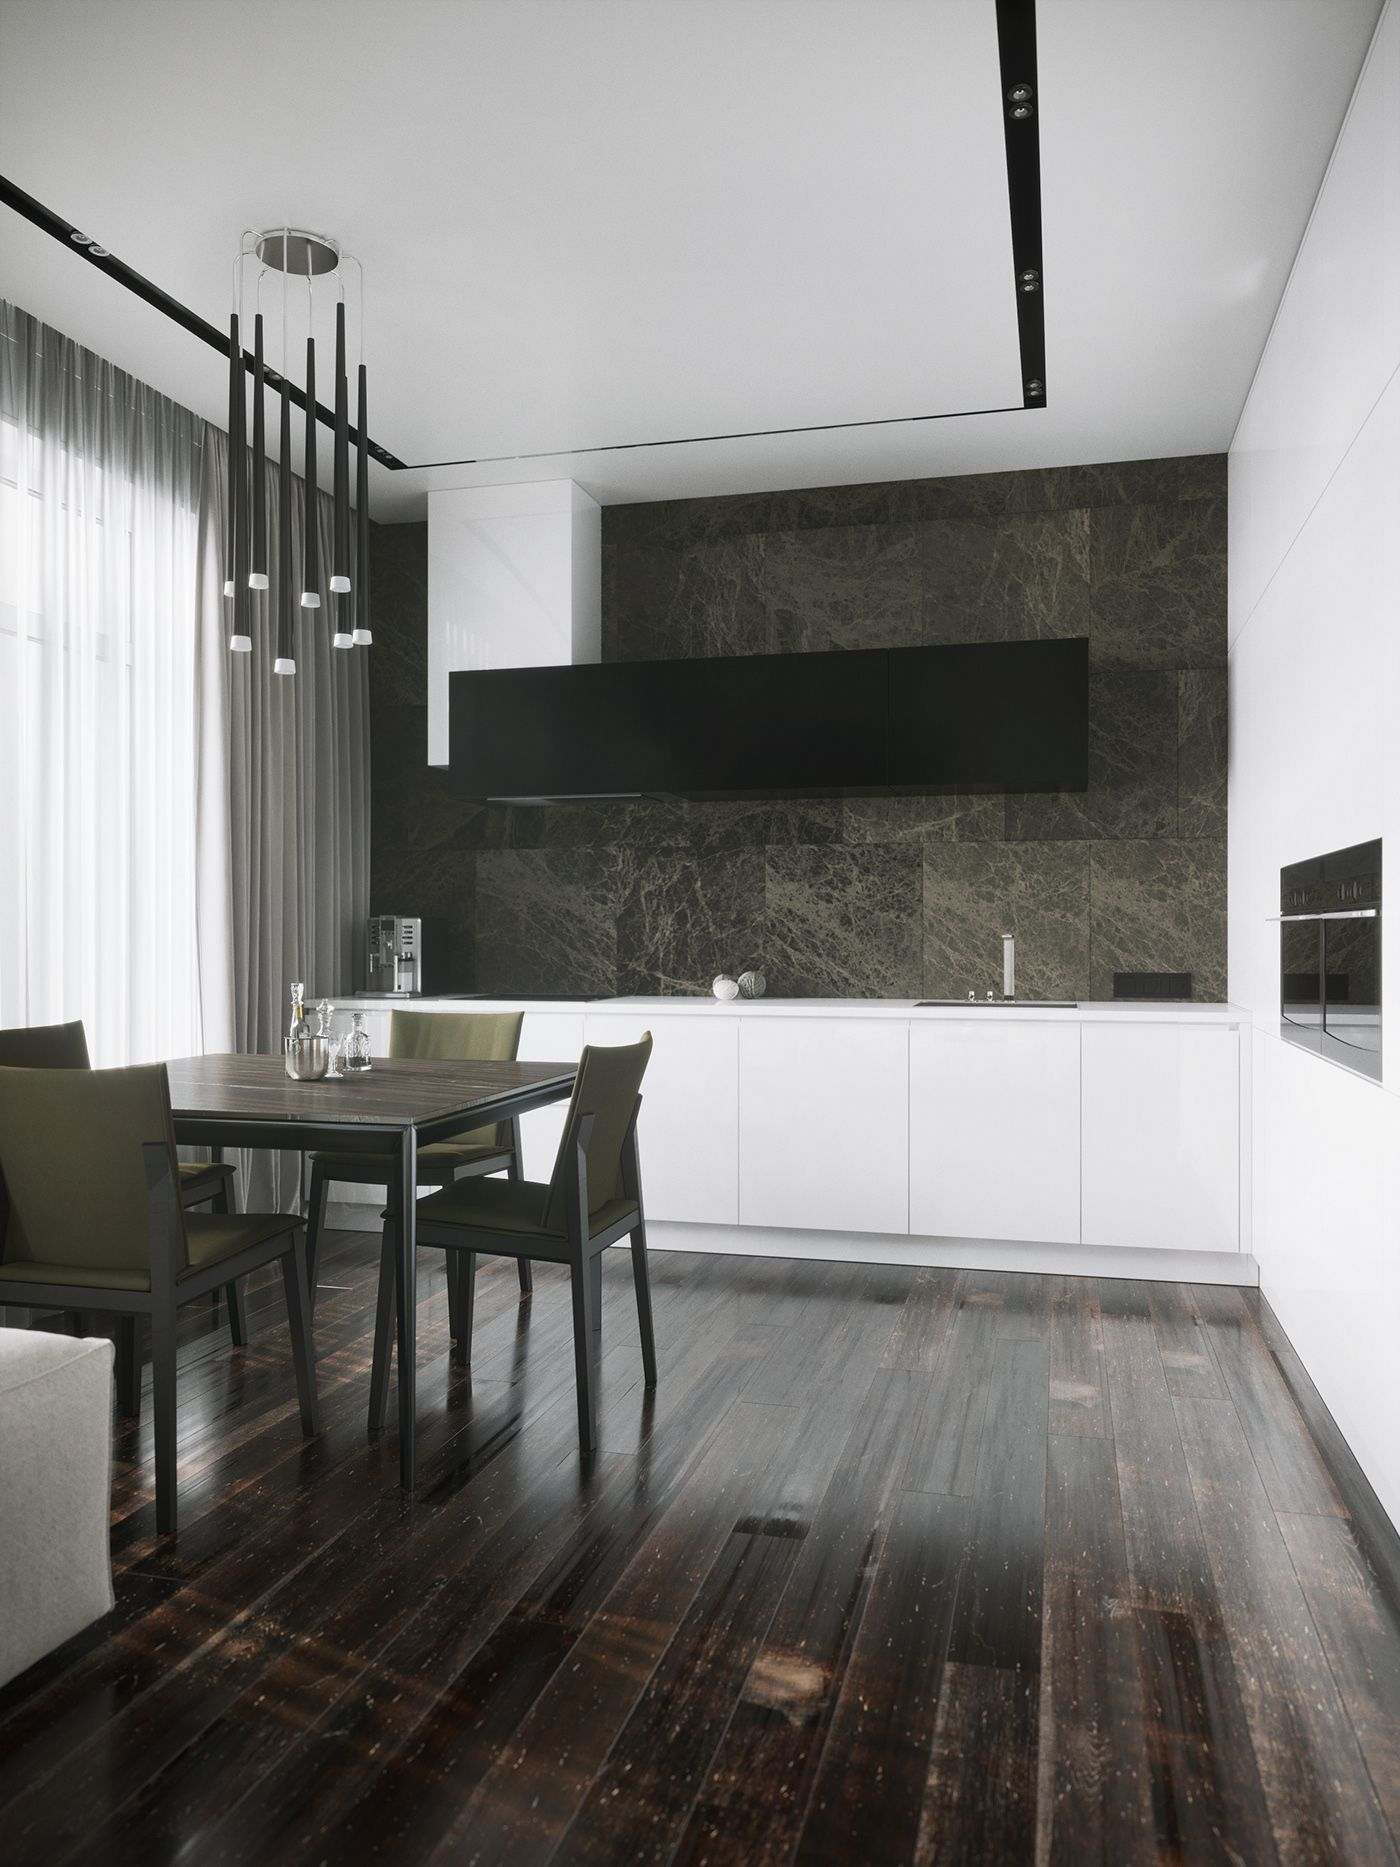 Apartment in St. Petersburg. Pavel Isaev Architects. VR on